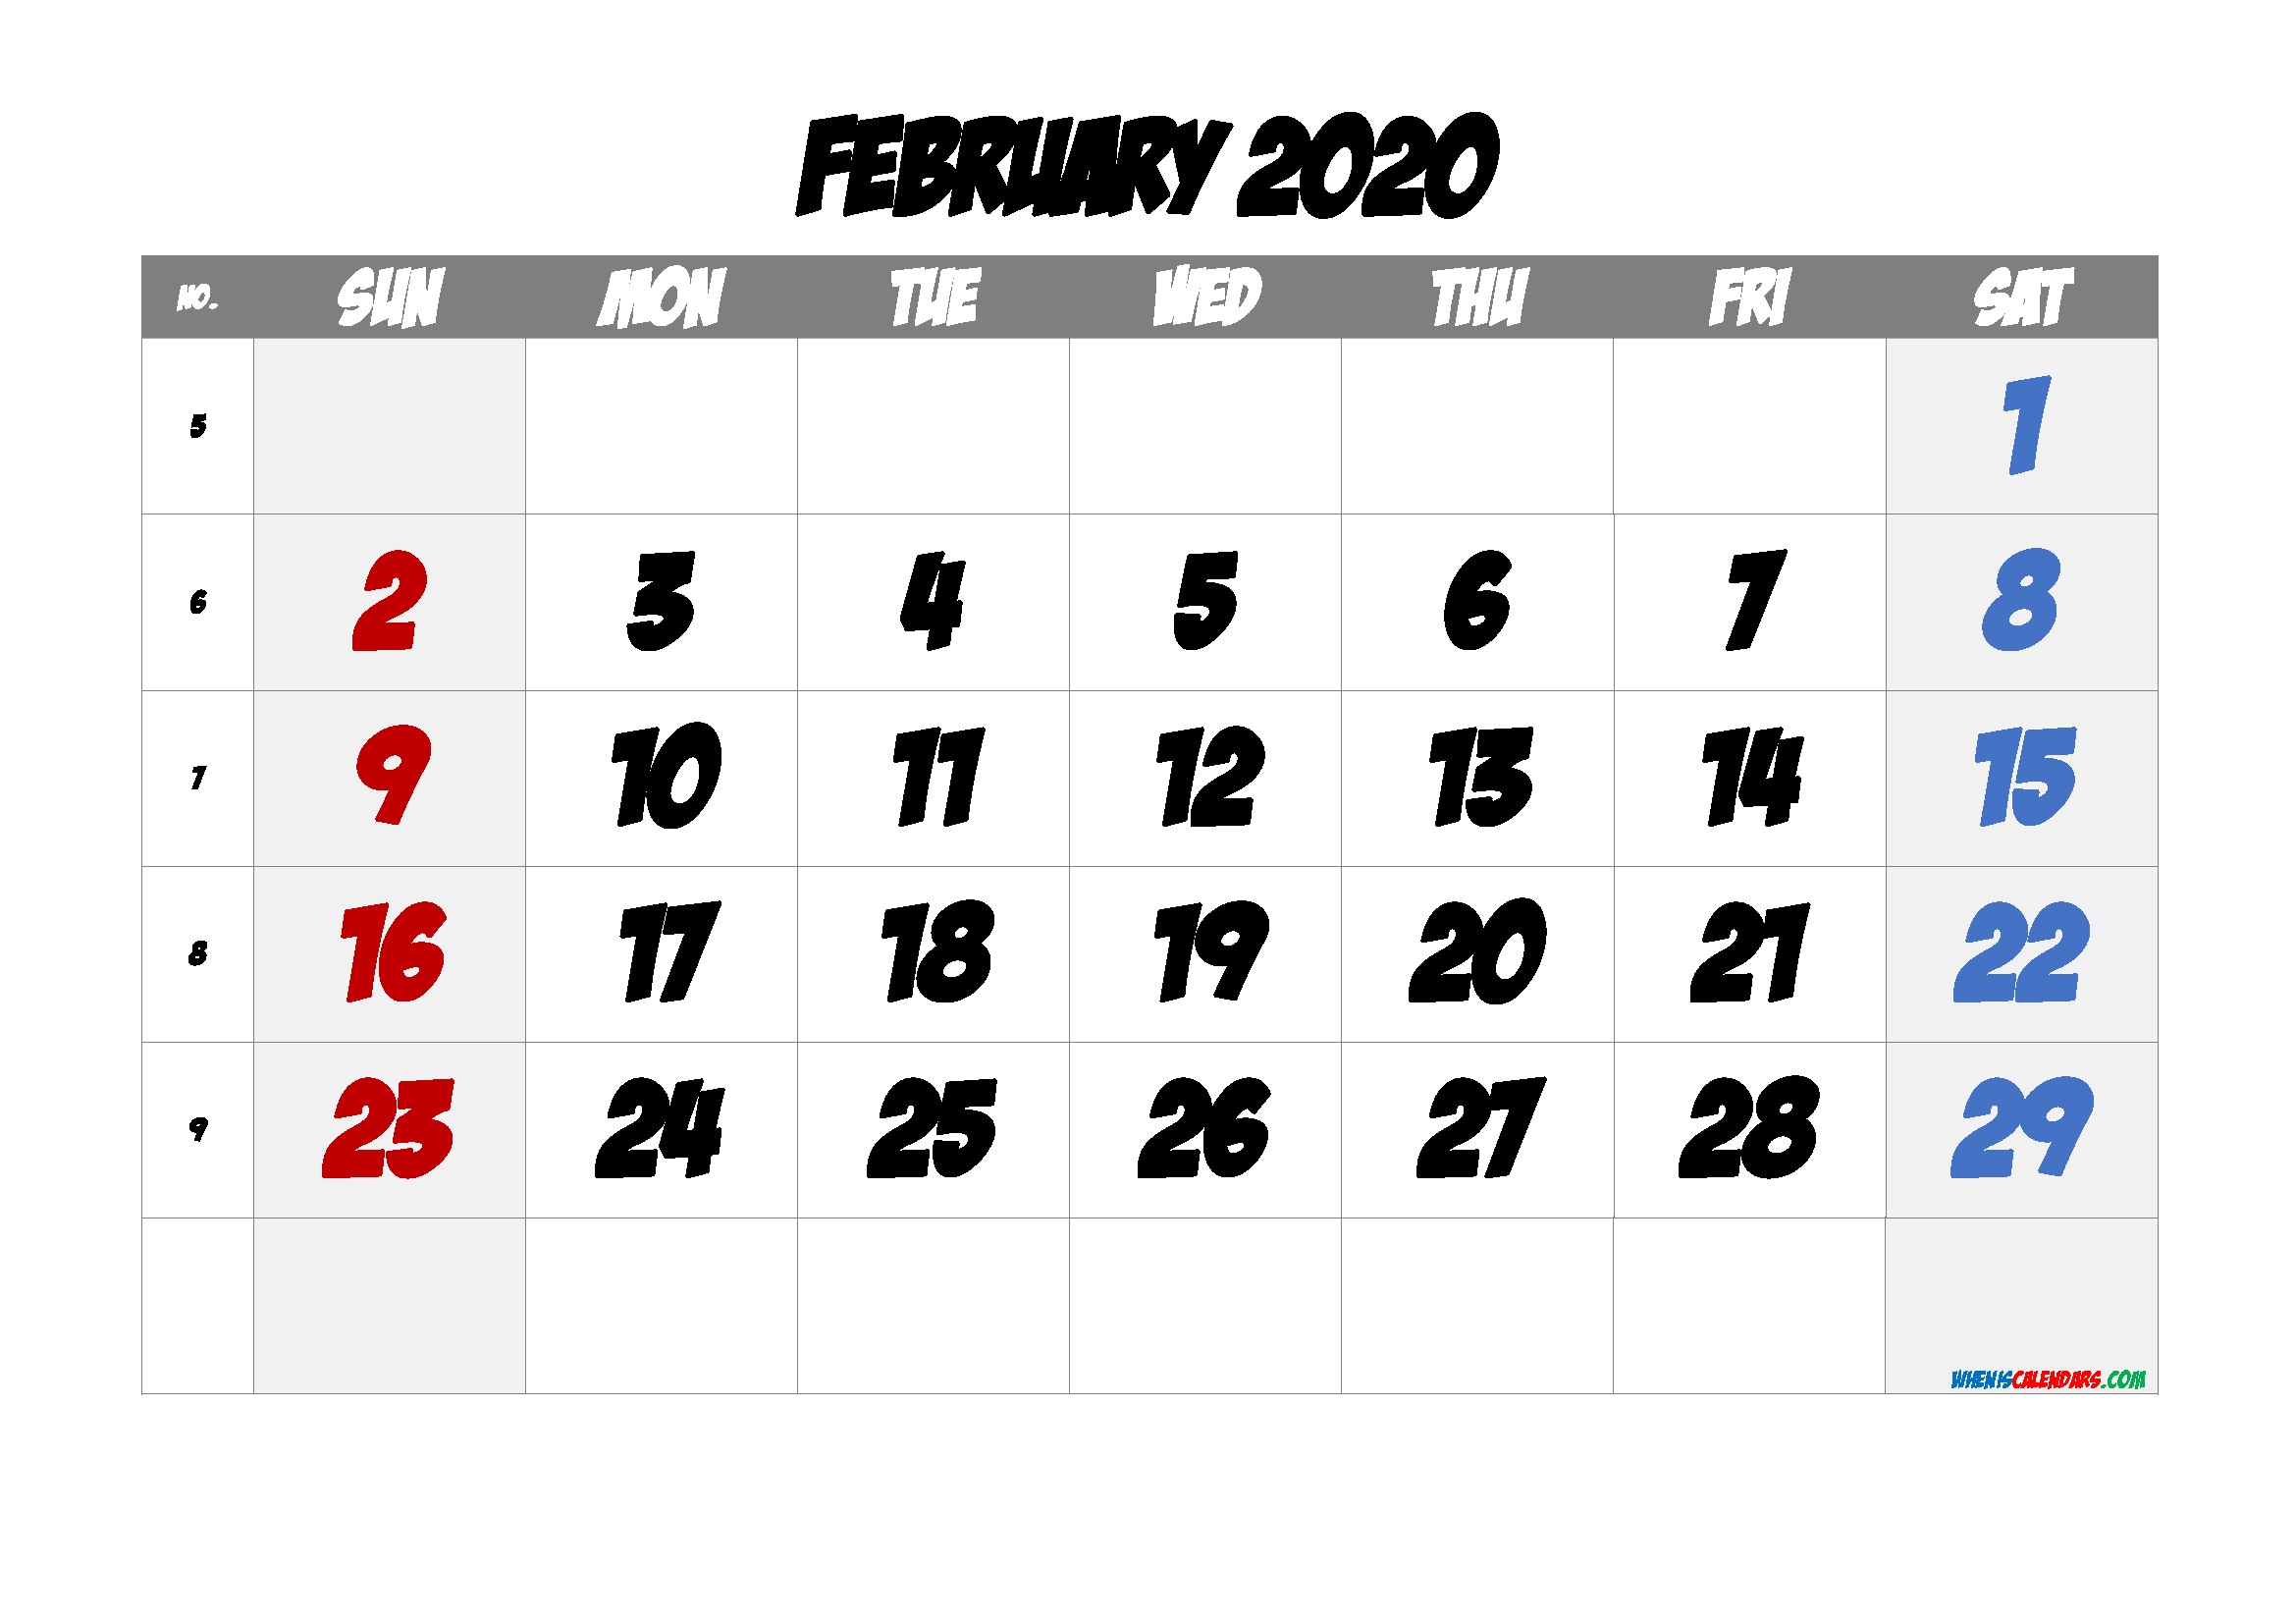 February 2020 Printable Calendar with Week Numbers